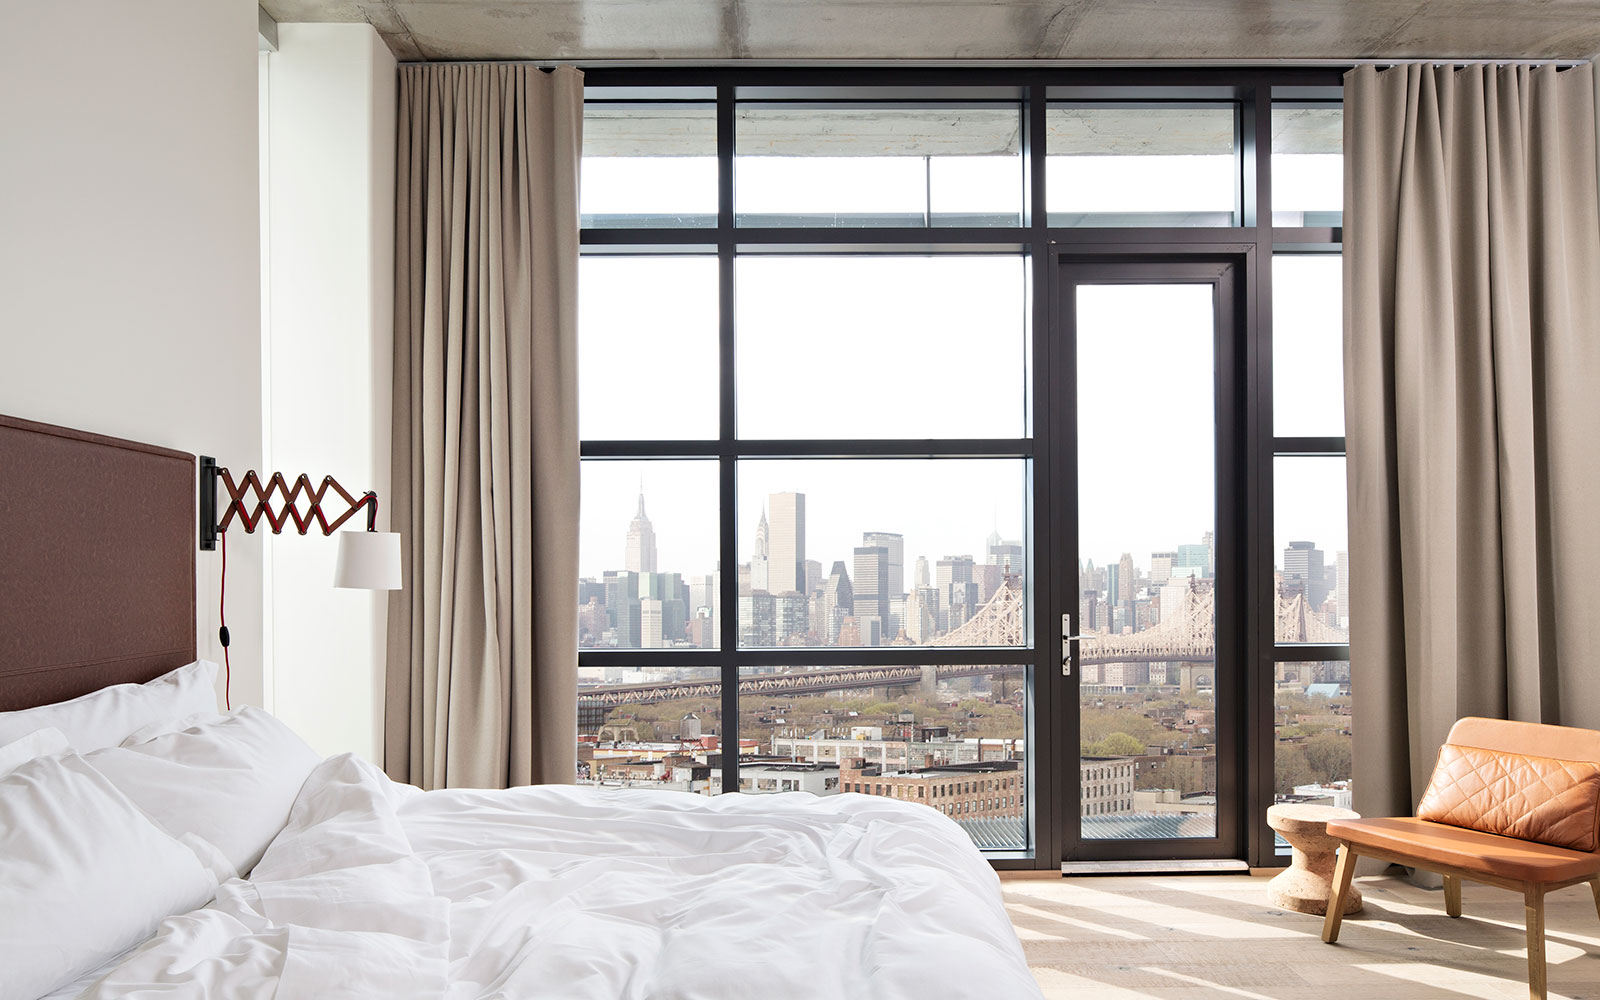 Boro Hotel Opens in Queens' Long Island City